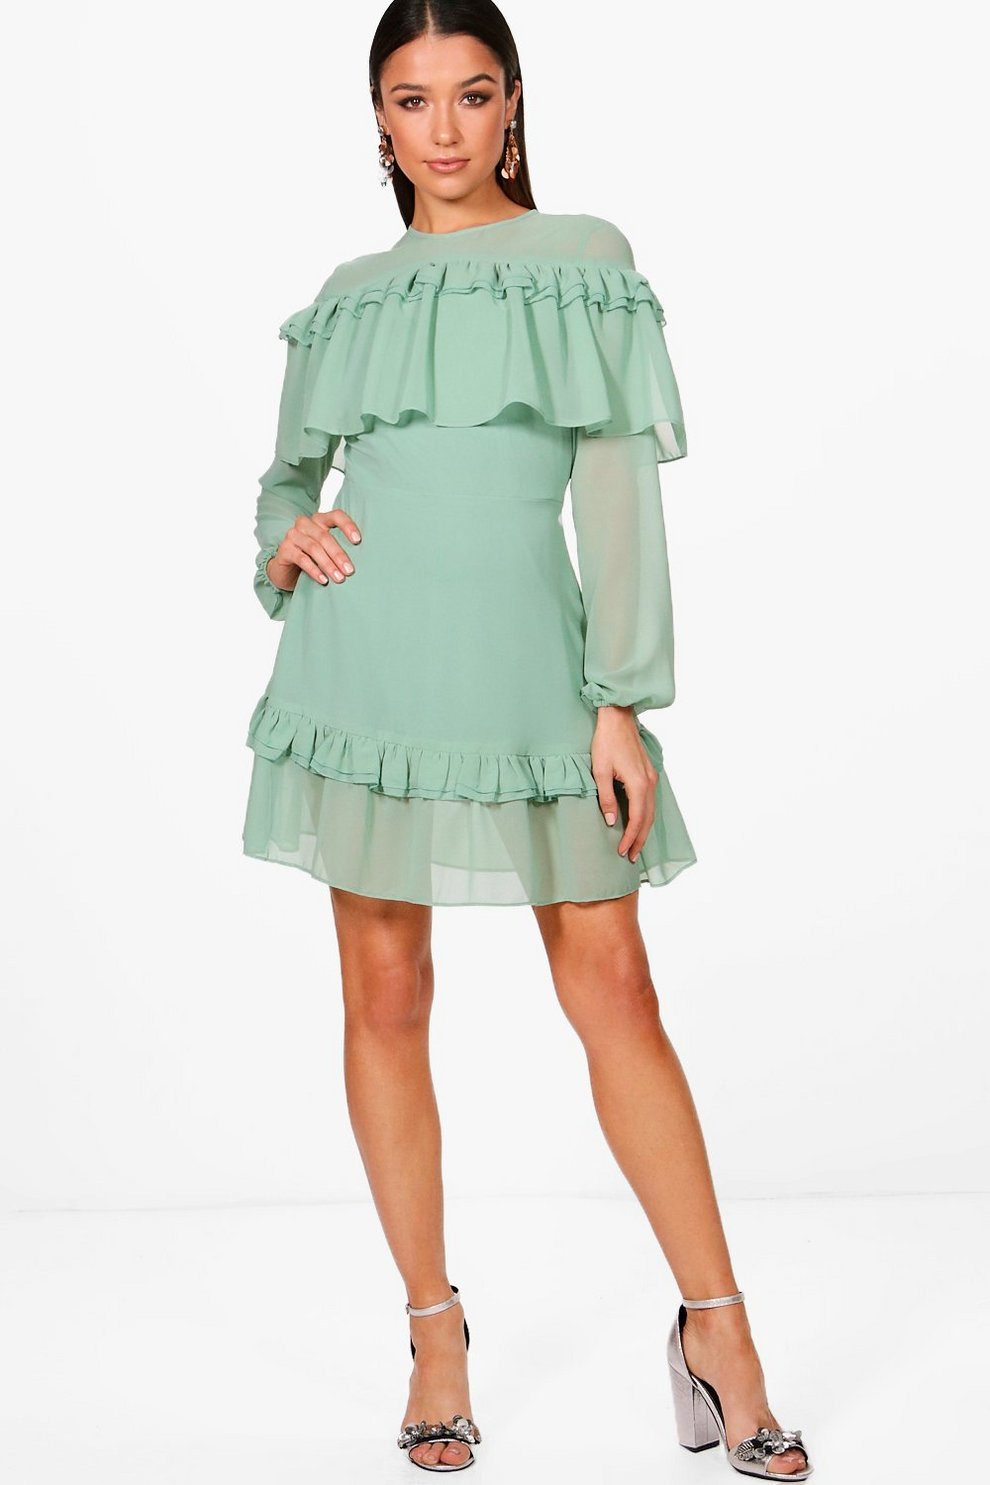 Boohoo Ruffle Shoulder and Hem Tea Dress